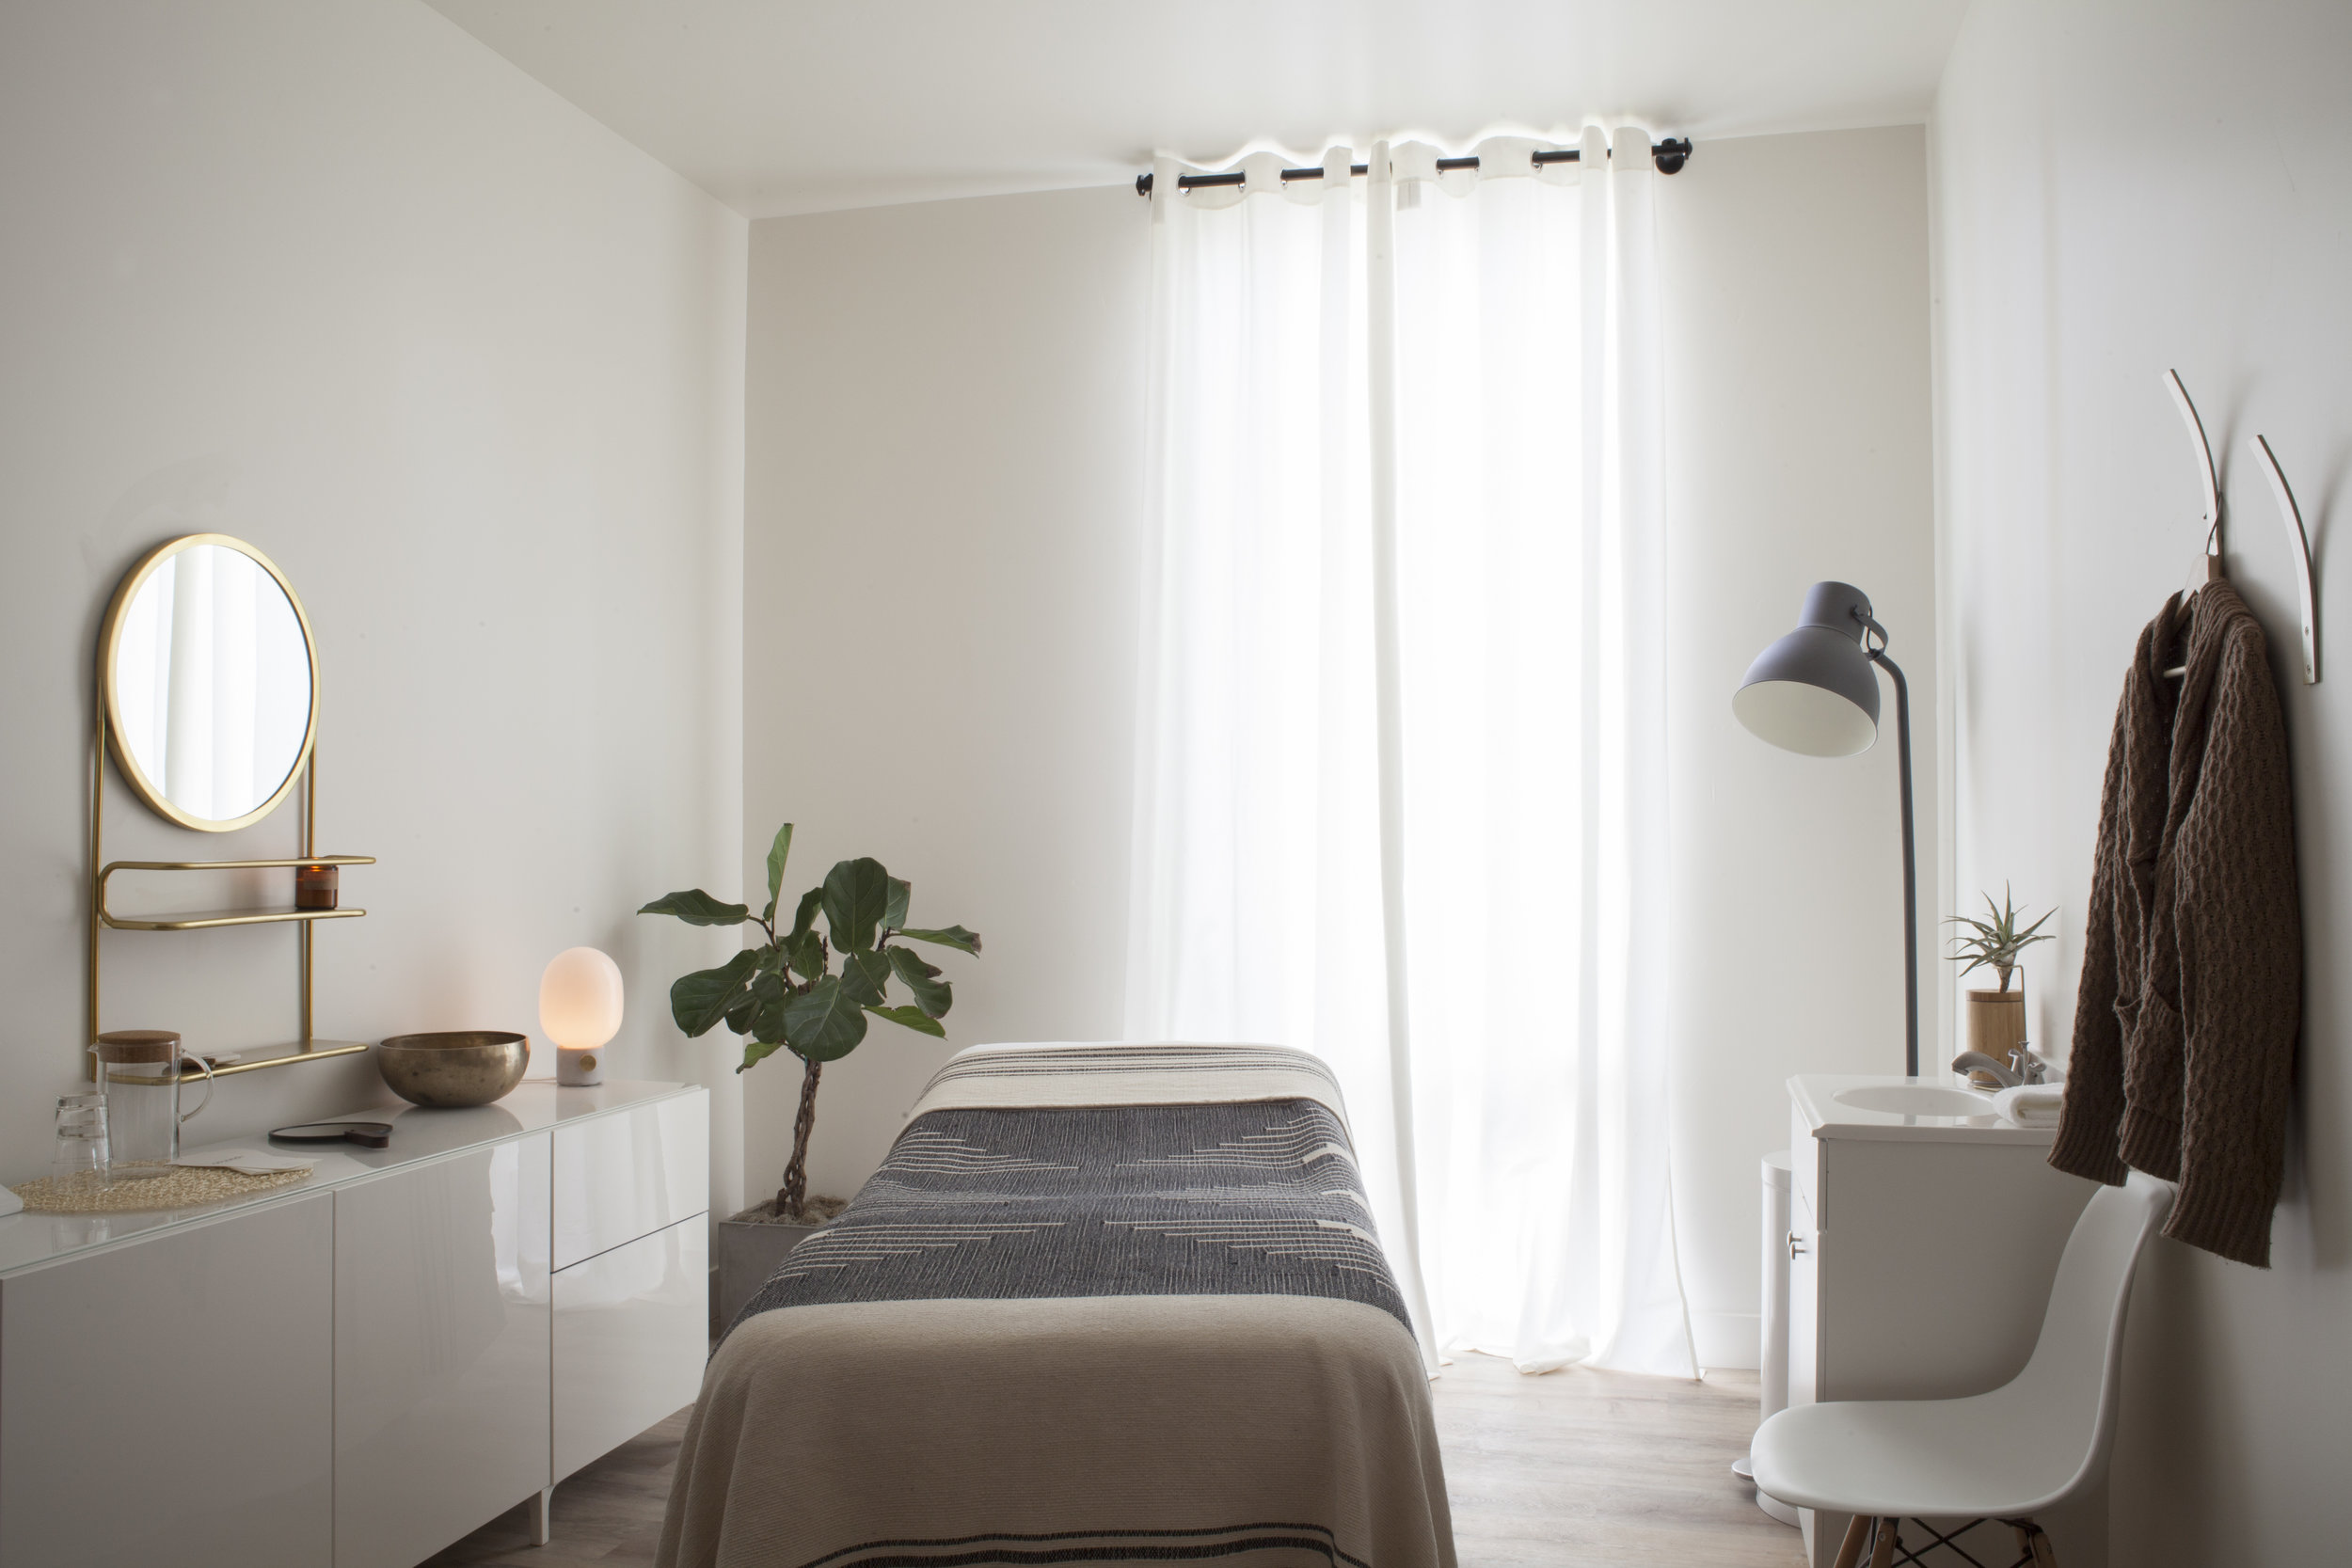 - Odla Studio is a petite sanctuary nestled in Salt Lake City'sboutique retail and wellness haven, the Maven District.